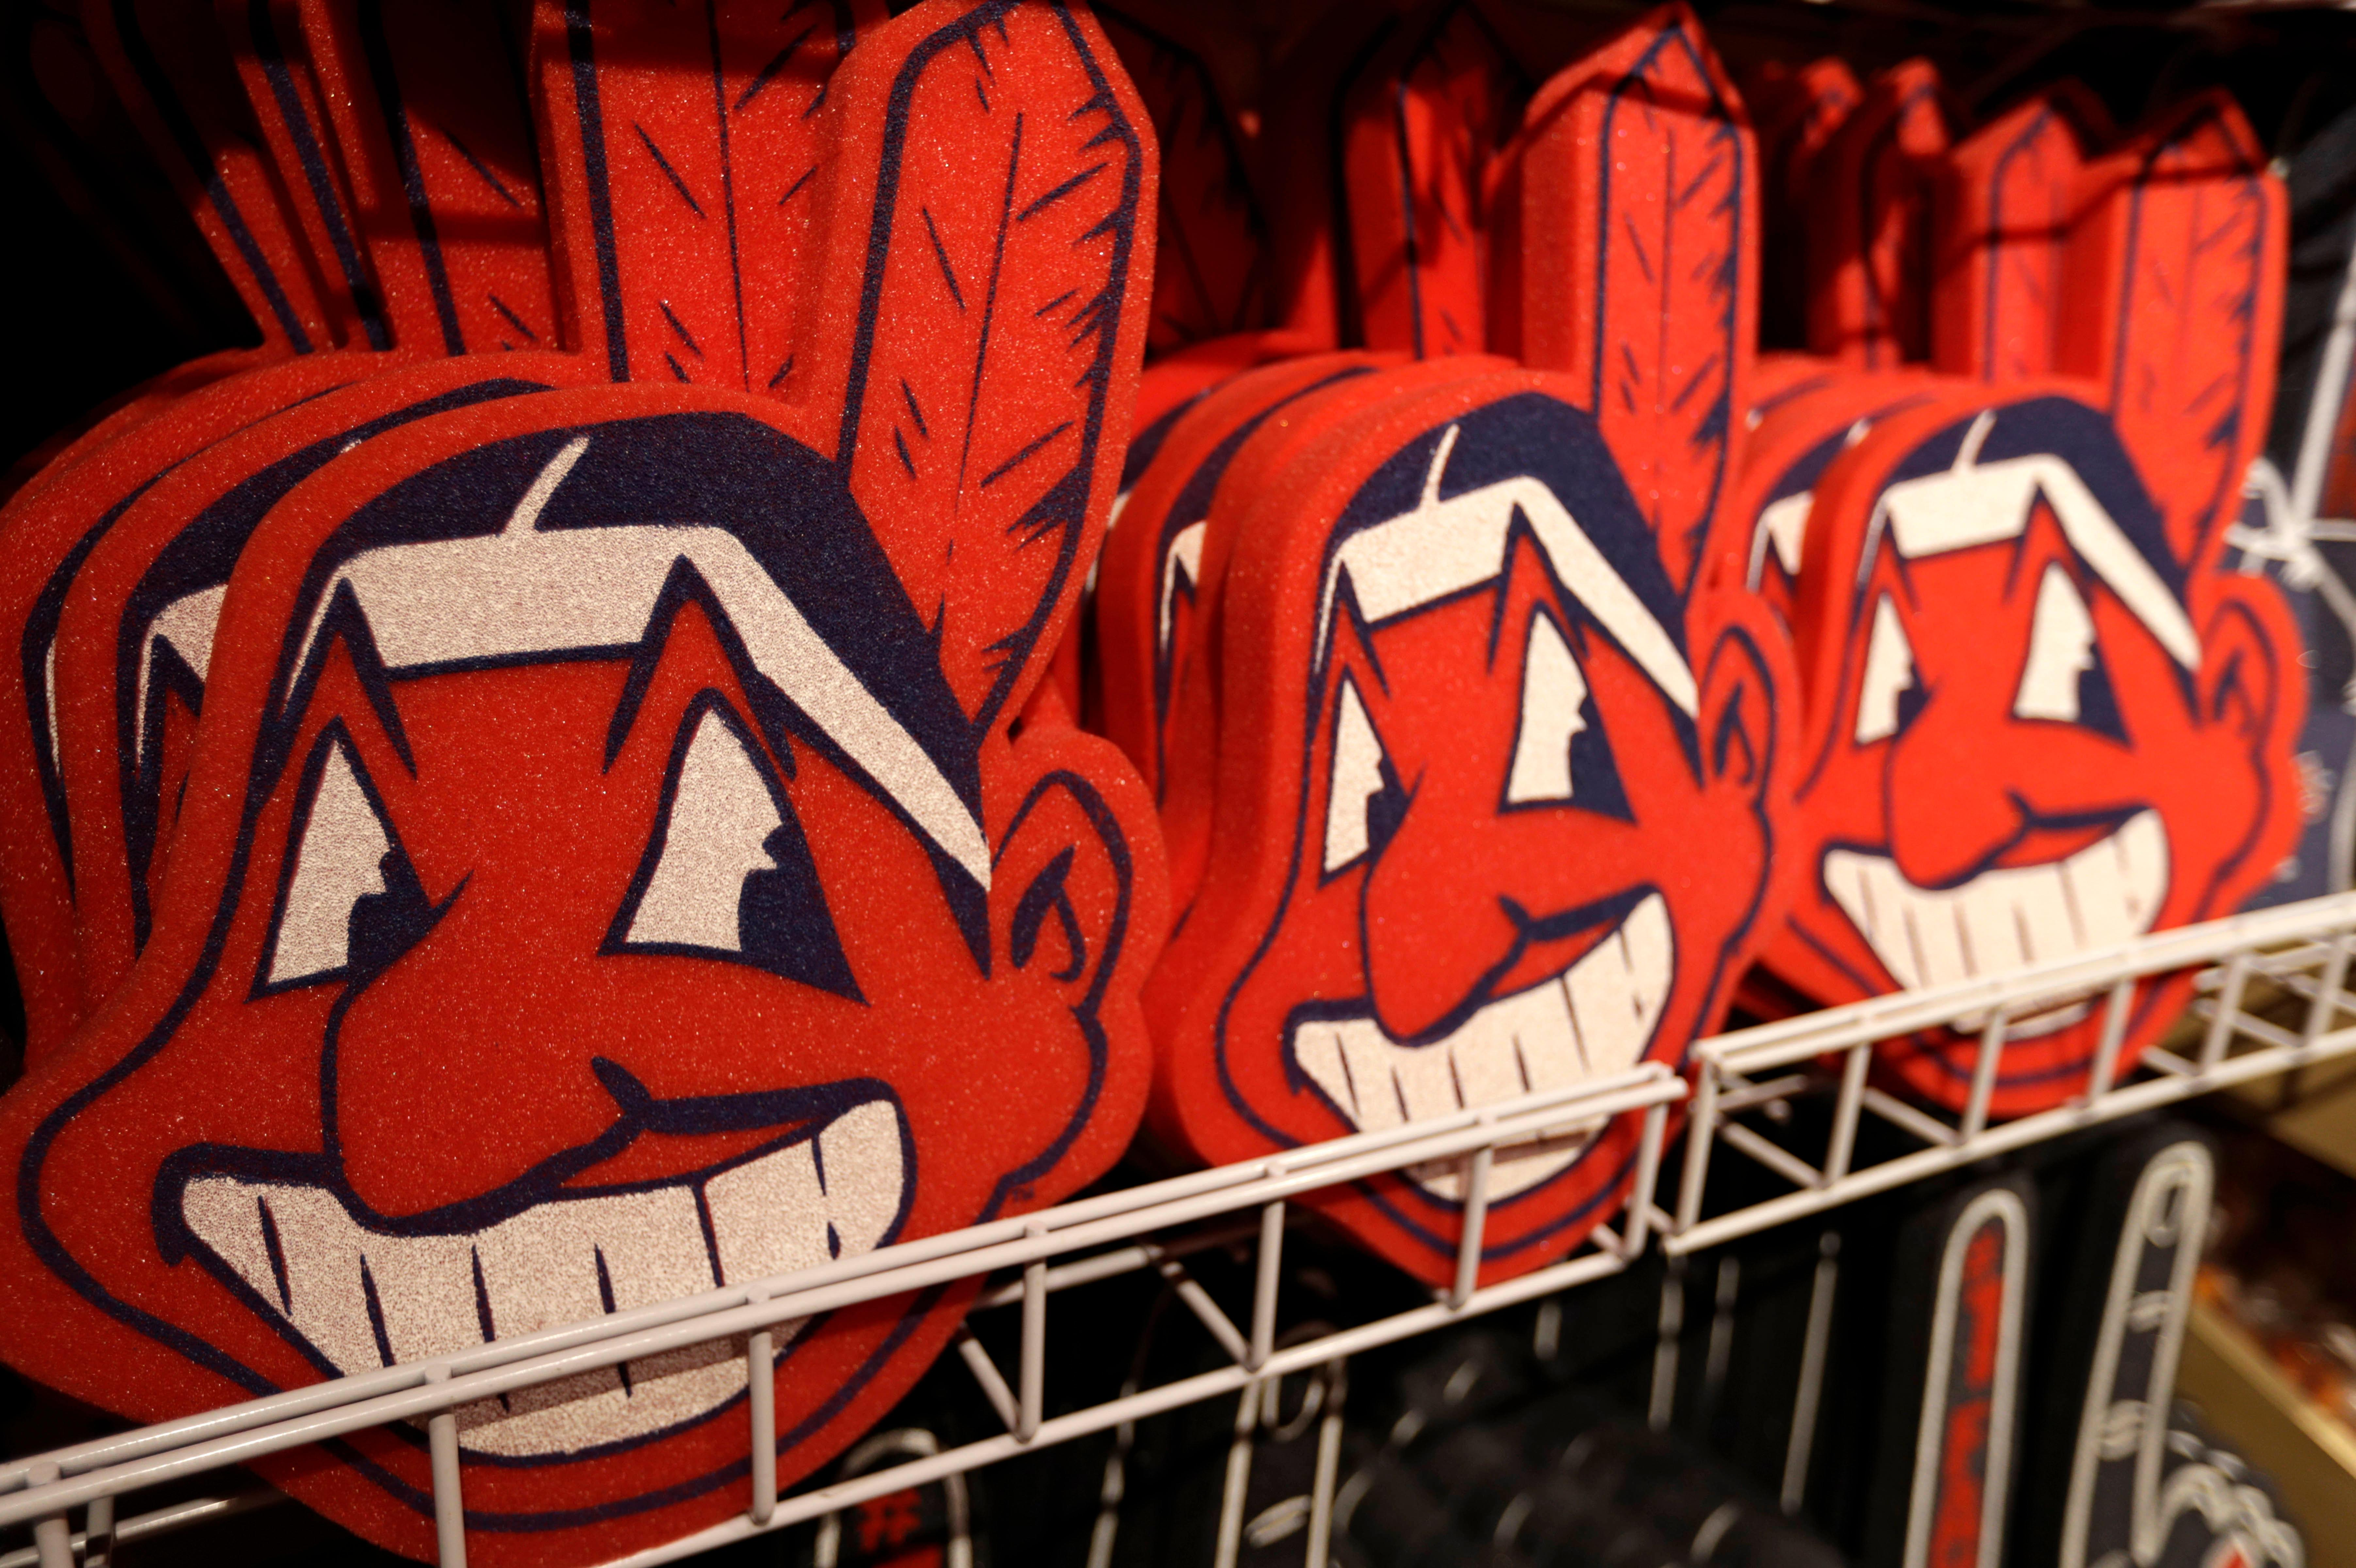 Foam Chief Wahoos line the shelf at the Cleveland Indians team shop, Monday, Jan. 29, 2018, in Cleveland. Divisive and hotly debated, the Chief Wahoo logo is being removed from the Cleveland Indians' uniform next year. The polarizing mascot is coming off the team's jersey sleeves and caps starting in the 2019 season. The Club will still sell merchandise featuring the mascot in Northeast Ohio. (AP Photo/Tony Dejak)